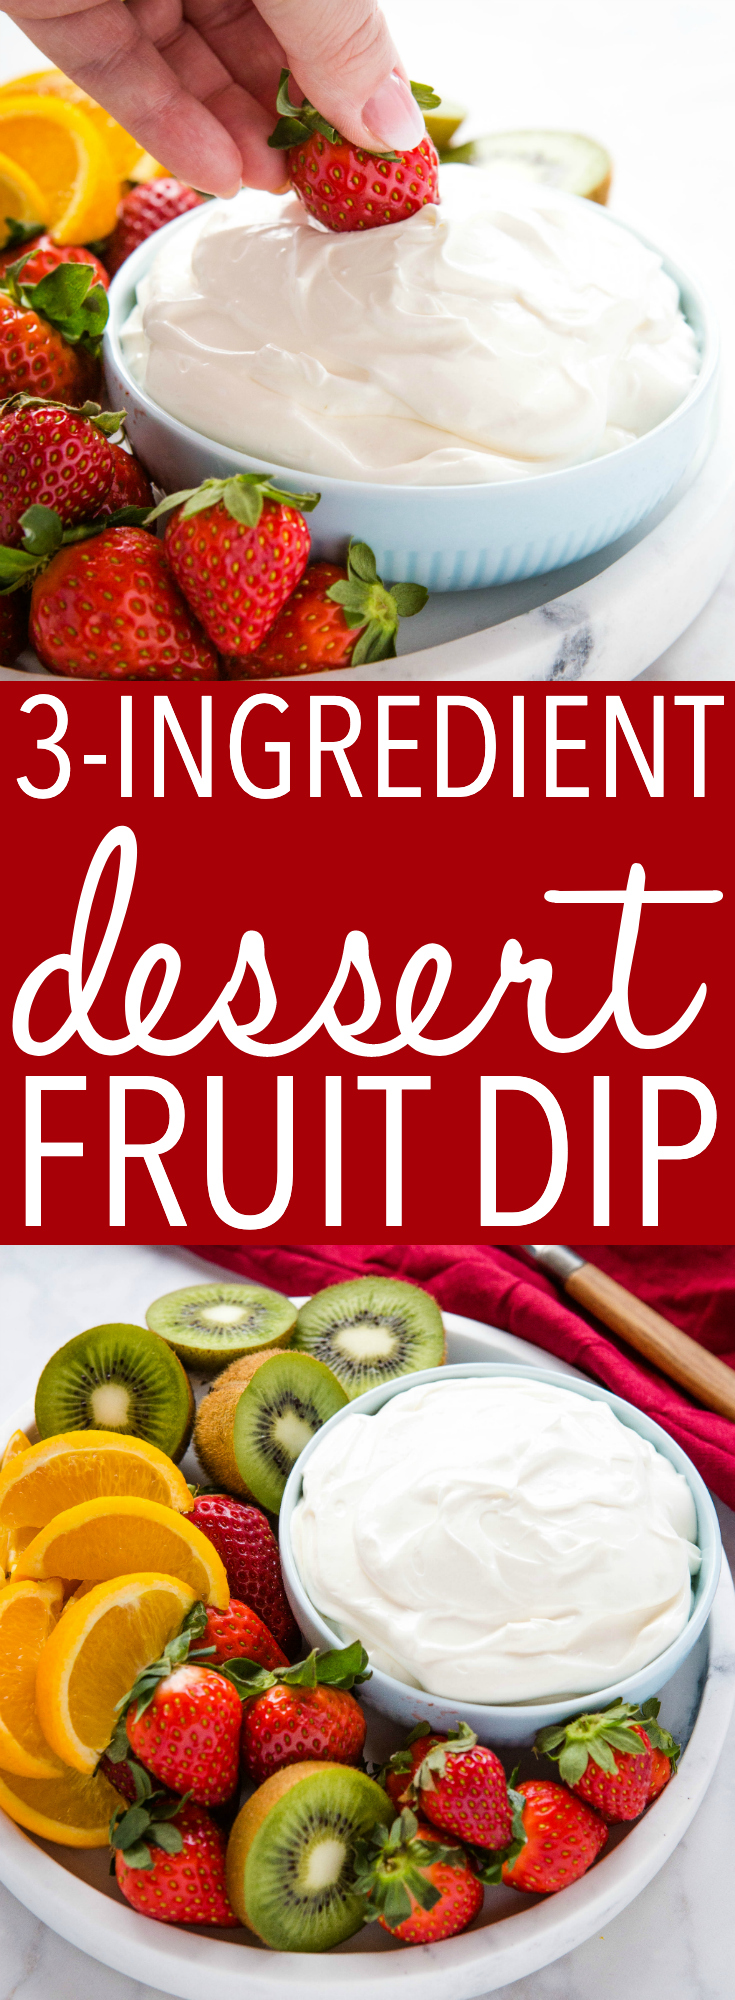 This 3-Ingredient Dessert Fruit Dip is an easy dessert dip for summer! It's made with only 3 simple ingredients and it's perfect for dipping fruit or cookies - great for parties! Recipe from thebusybaker.ca! #dip #fruit #dessert #easyrecipe #barbecue #partydip #party via @busybakerblog